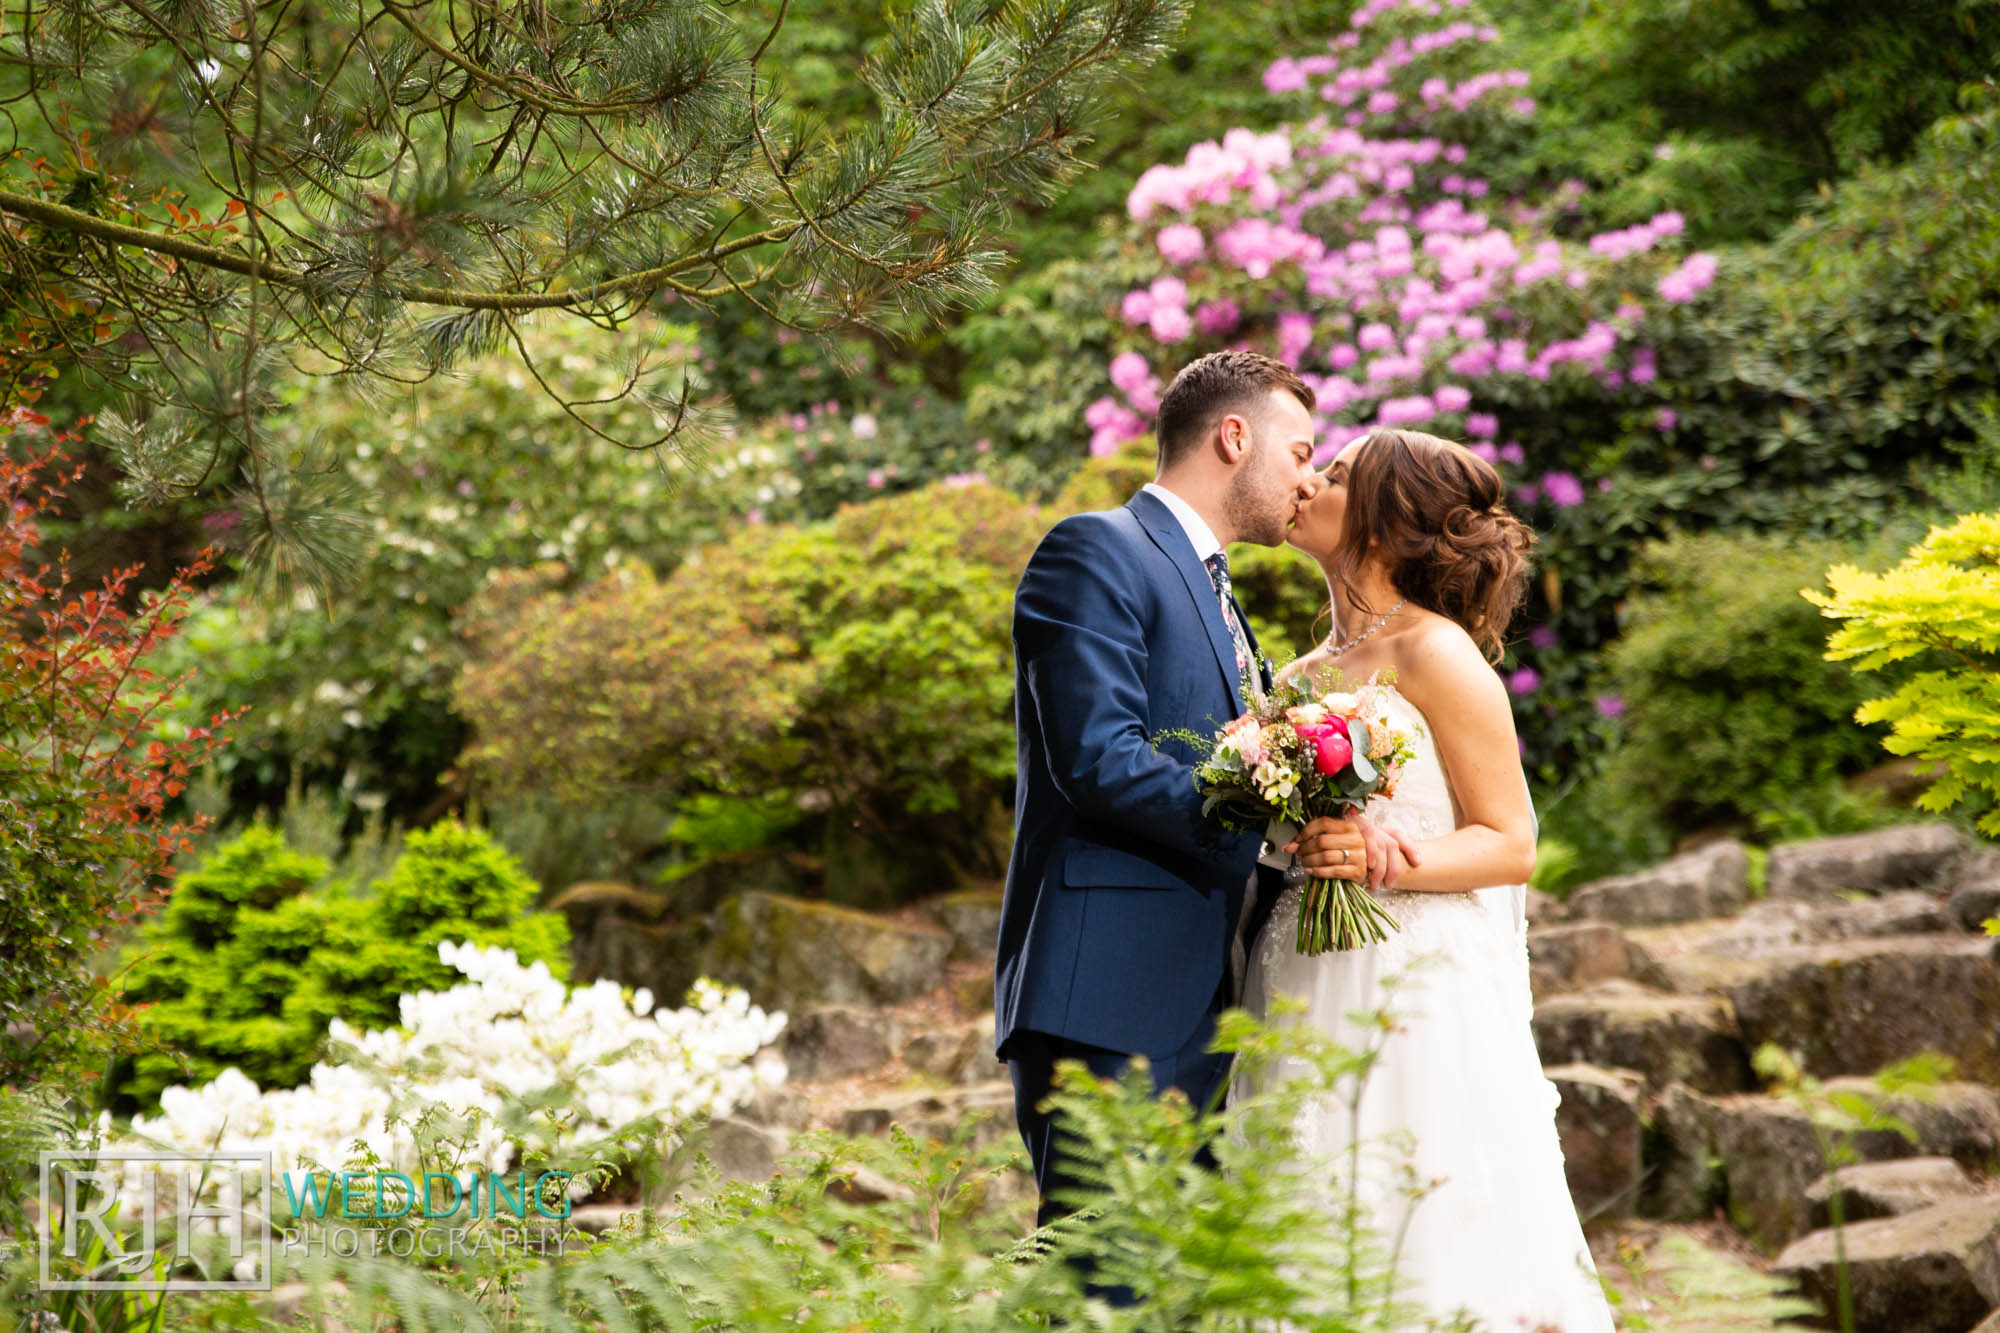 Whirlowbrook Hall Wedding Photography_Jack & Lydia_064_3C2A3515.jpg